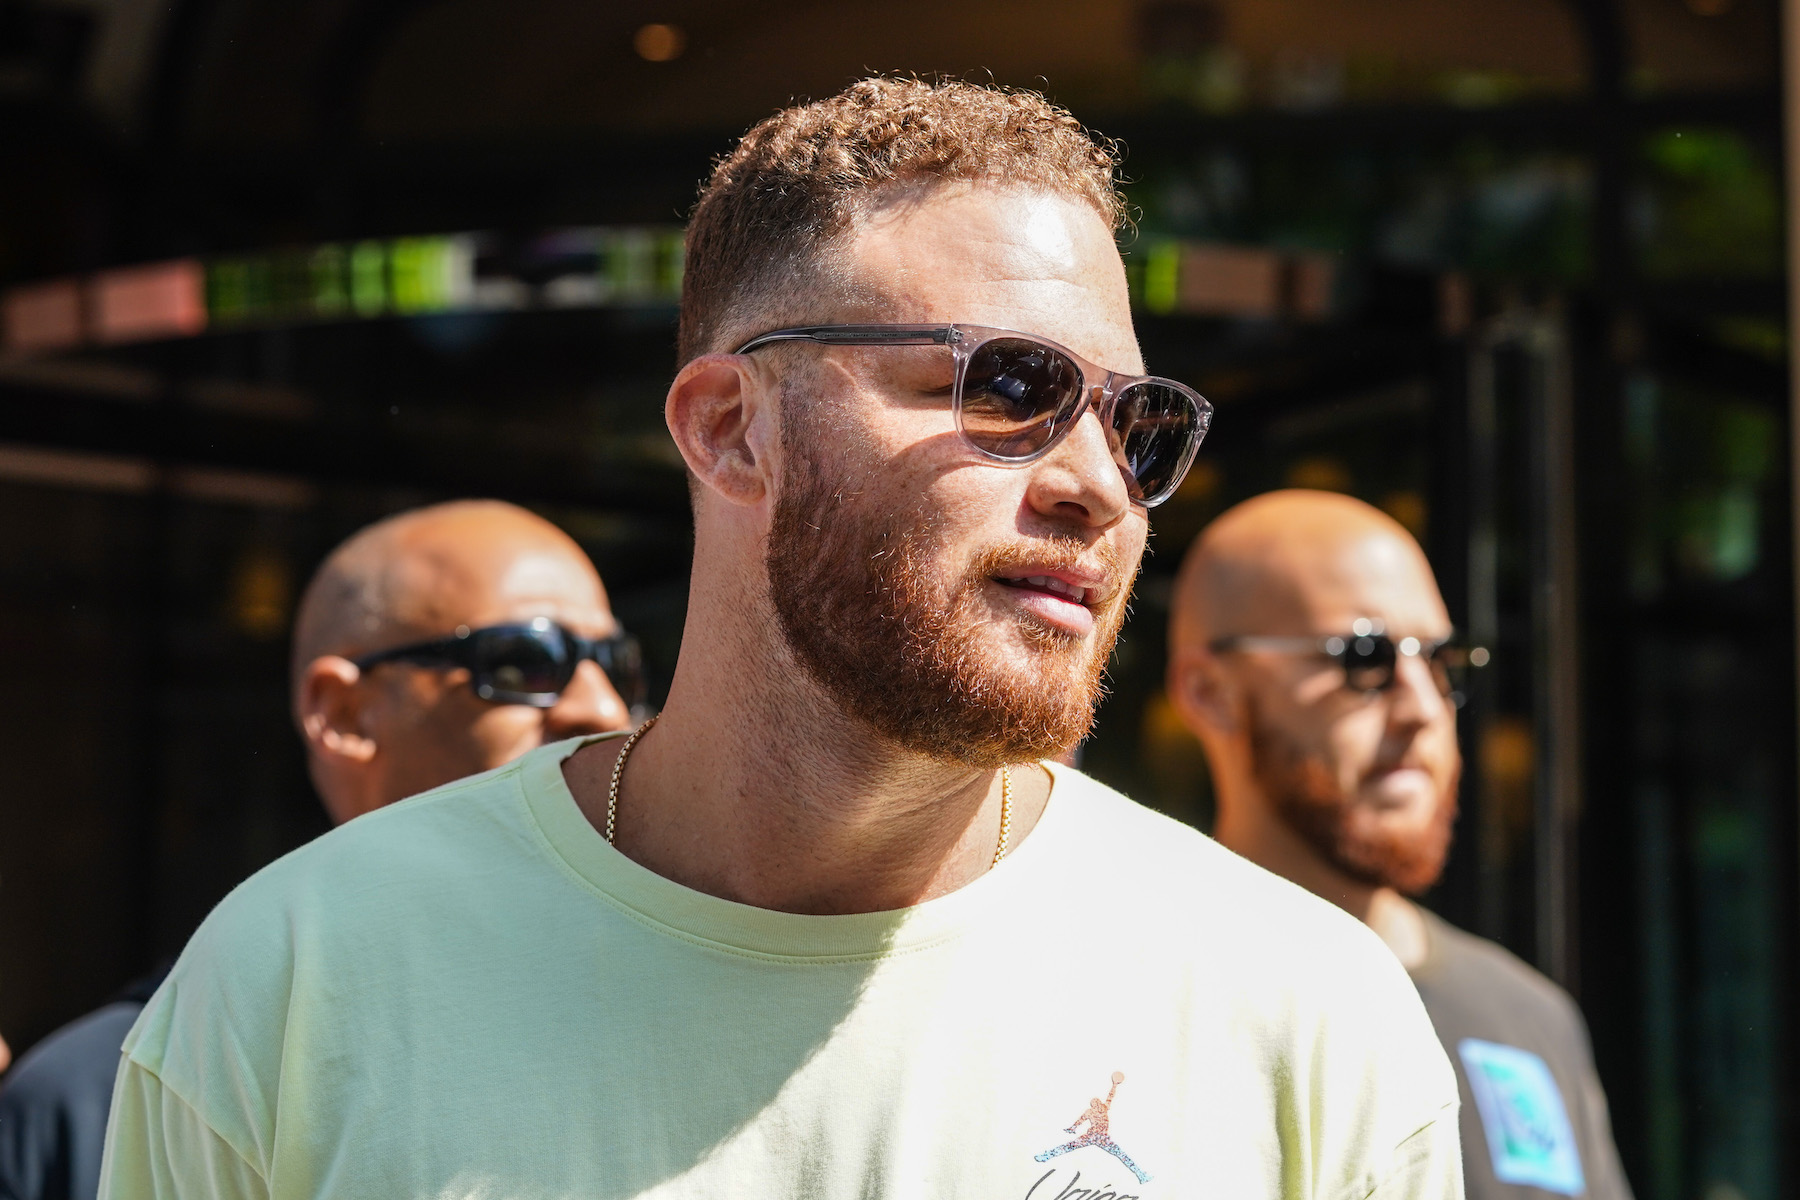 NBA player Blake Griffin in 2020